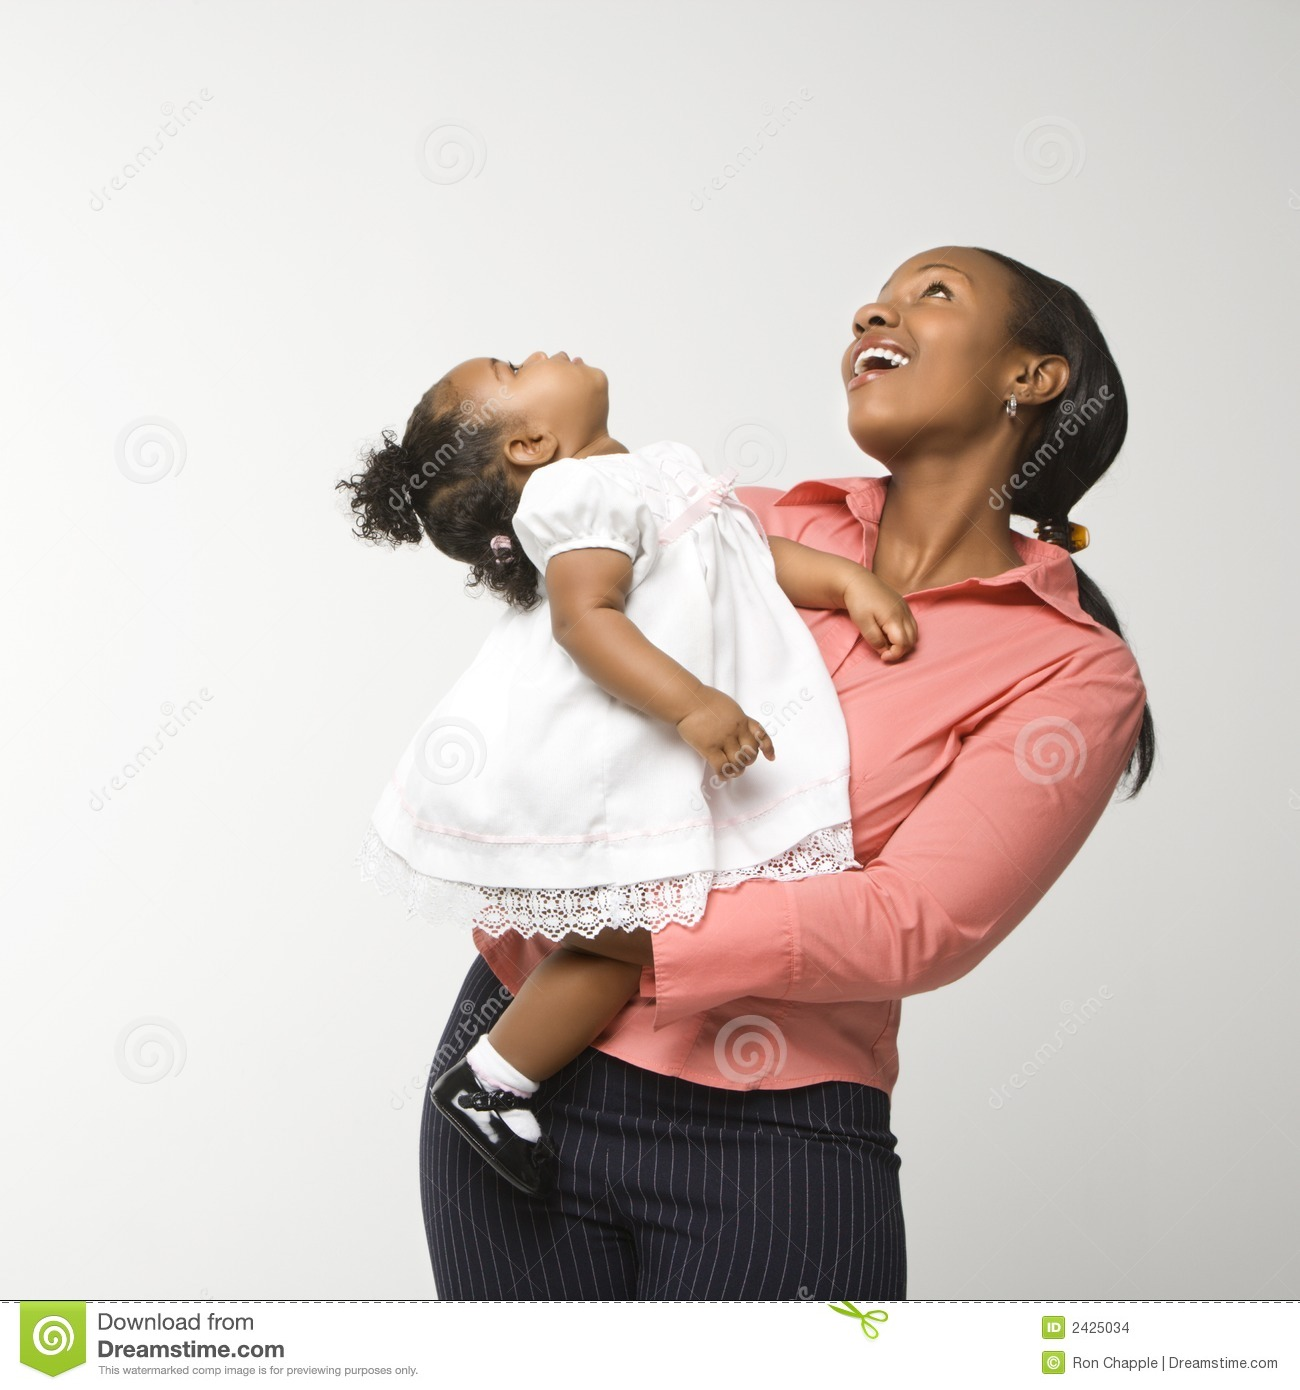 Woman holding infant girl.